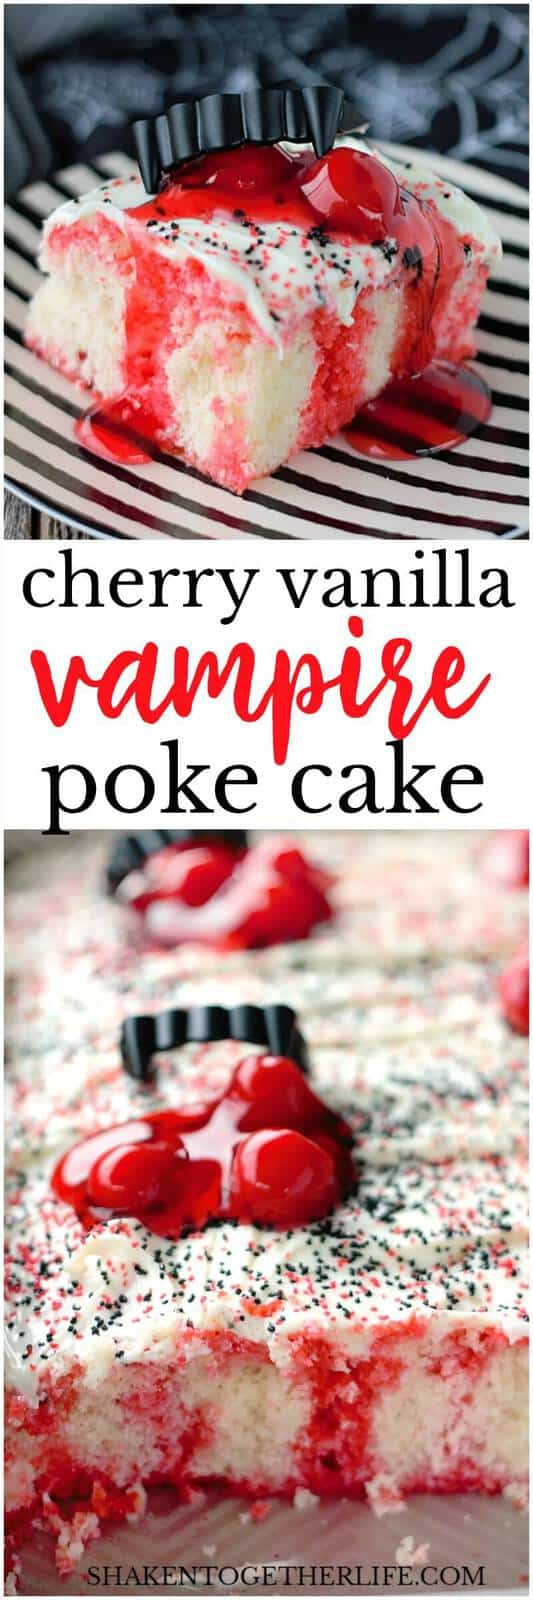 Cherry Vanilla Vampire Poke Cake is frightfully fun and devilishly delicious! The glossy globs of cherry pie filling and fangs are the perfect touch for this Halloween dessert!